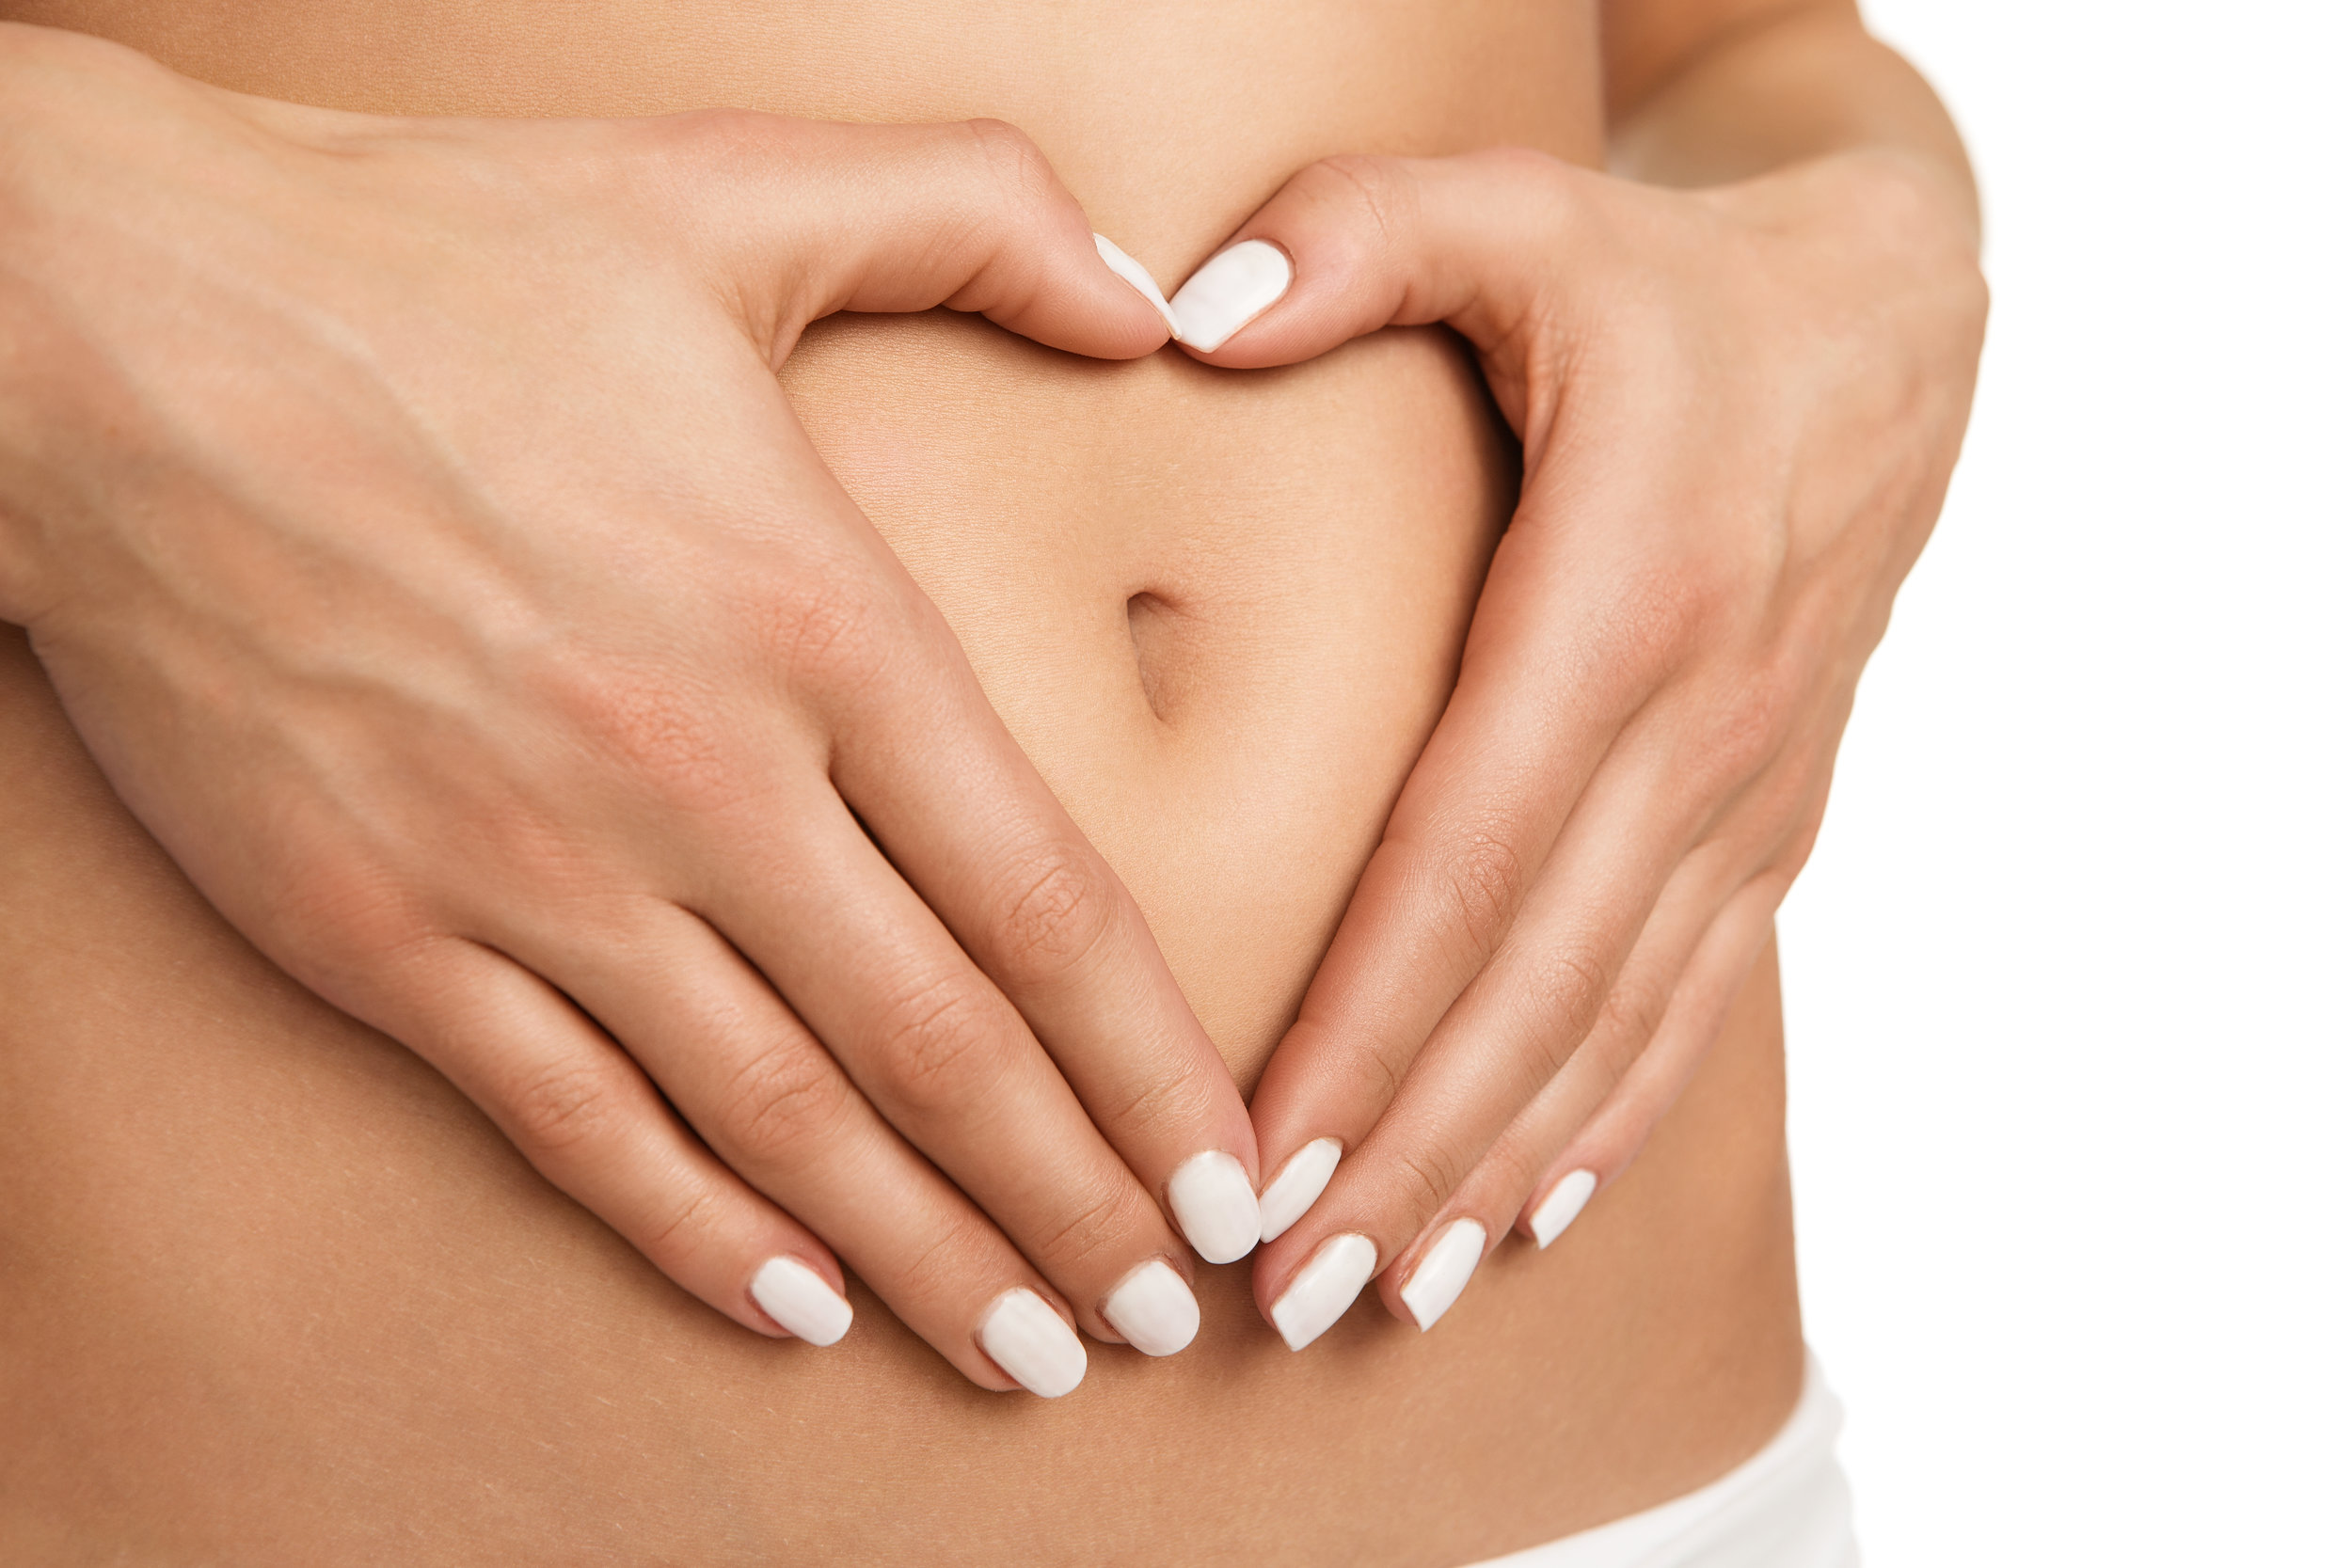 Womens-Health-Cramps-Stress-Acupuncture-White-Plains-Westchester.jpg